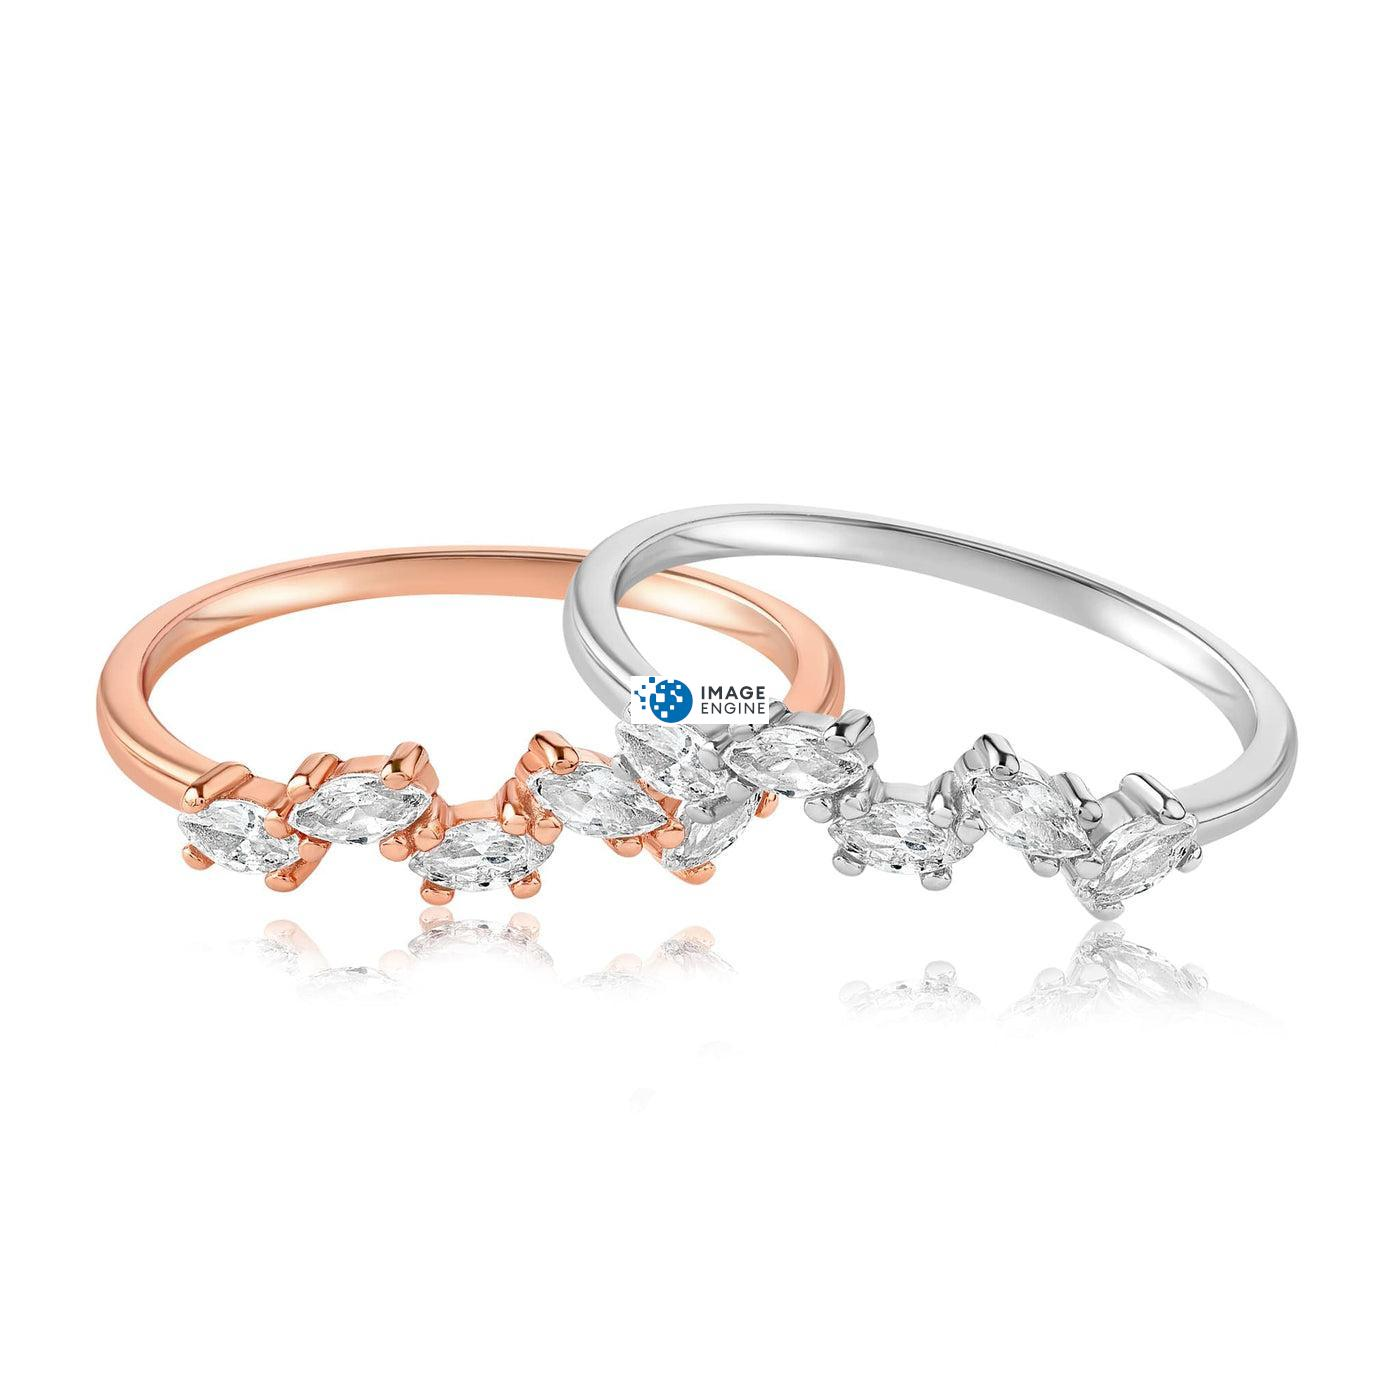 Genna Round Cut Ring - Front View Side by Side - 18K Rose Gold Vermeil and 925 Sterling Silver